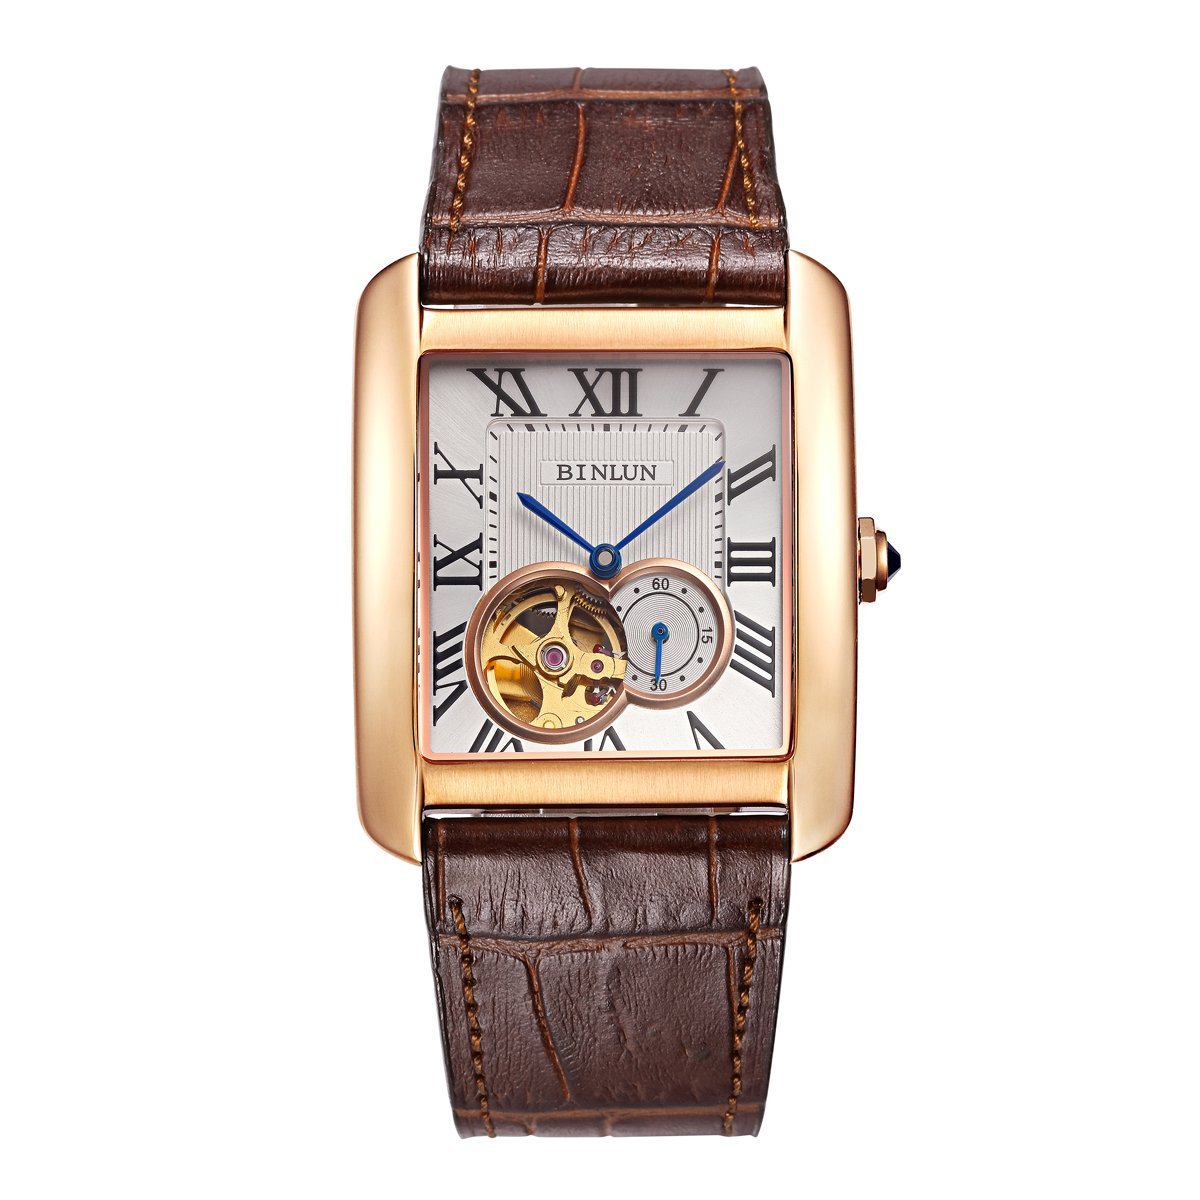 Binlun Men's Rectangle Shape Gold-Plating Business Mechanical Self-Winding Watch Brown Leather Band by BINLUN (Image #7)